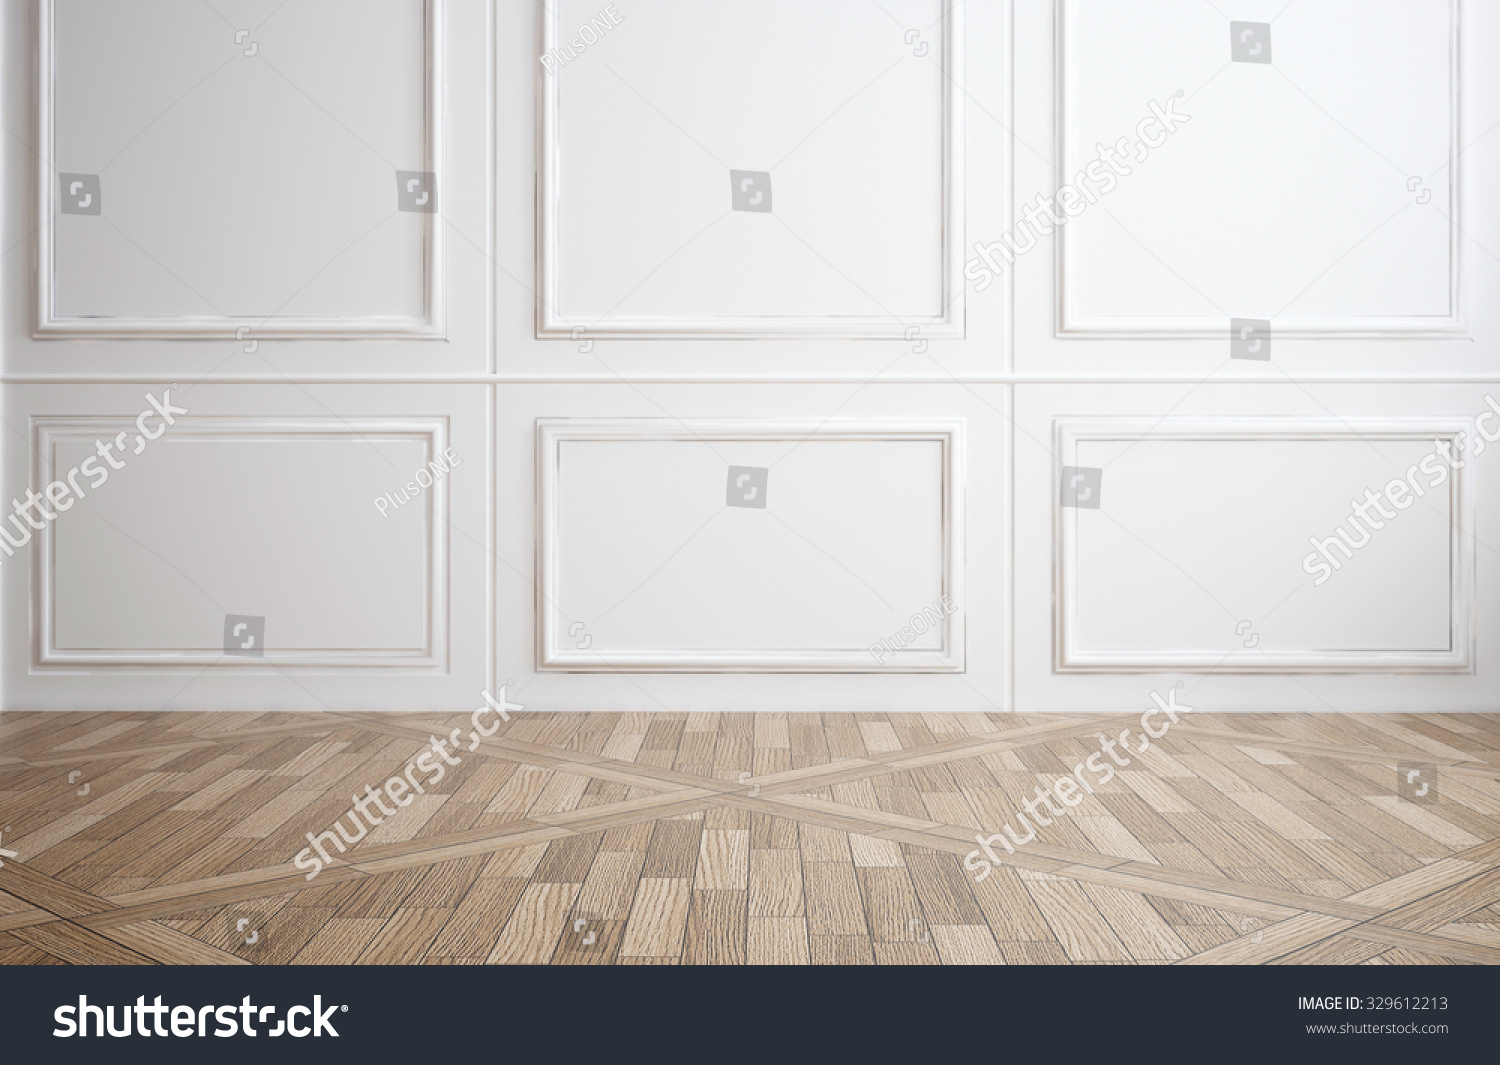 White Wood Paneling For Walls : Empty room classic white wood paneling stock illustration